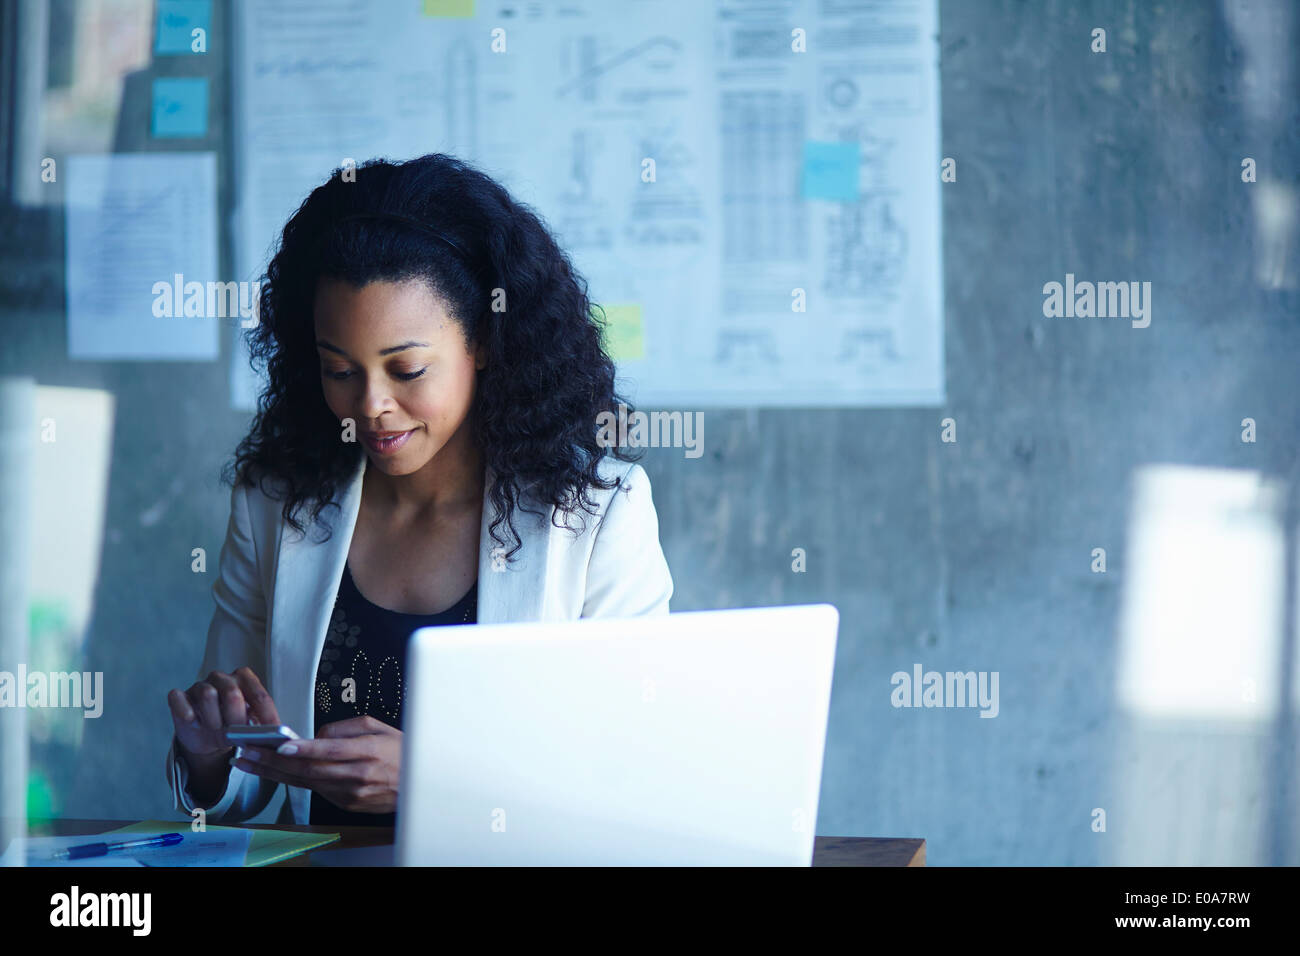 Young businesswomen texting on smartphone in office - Stock Image